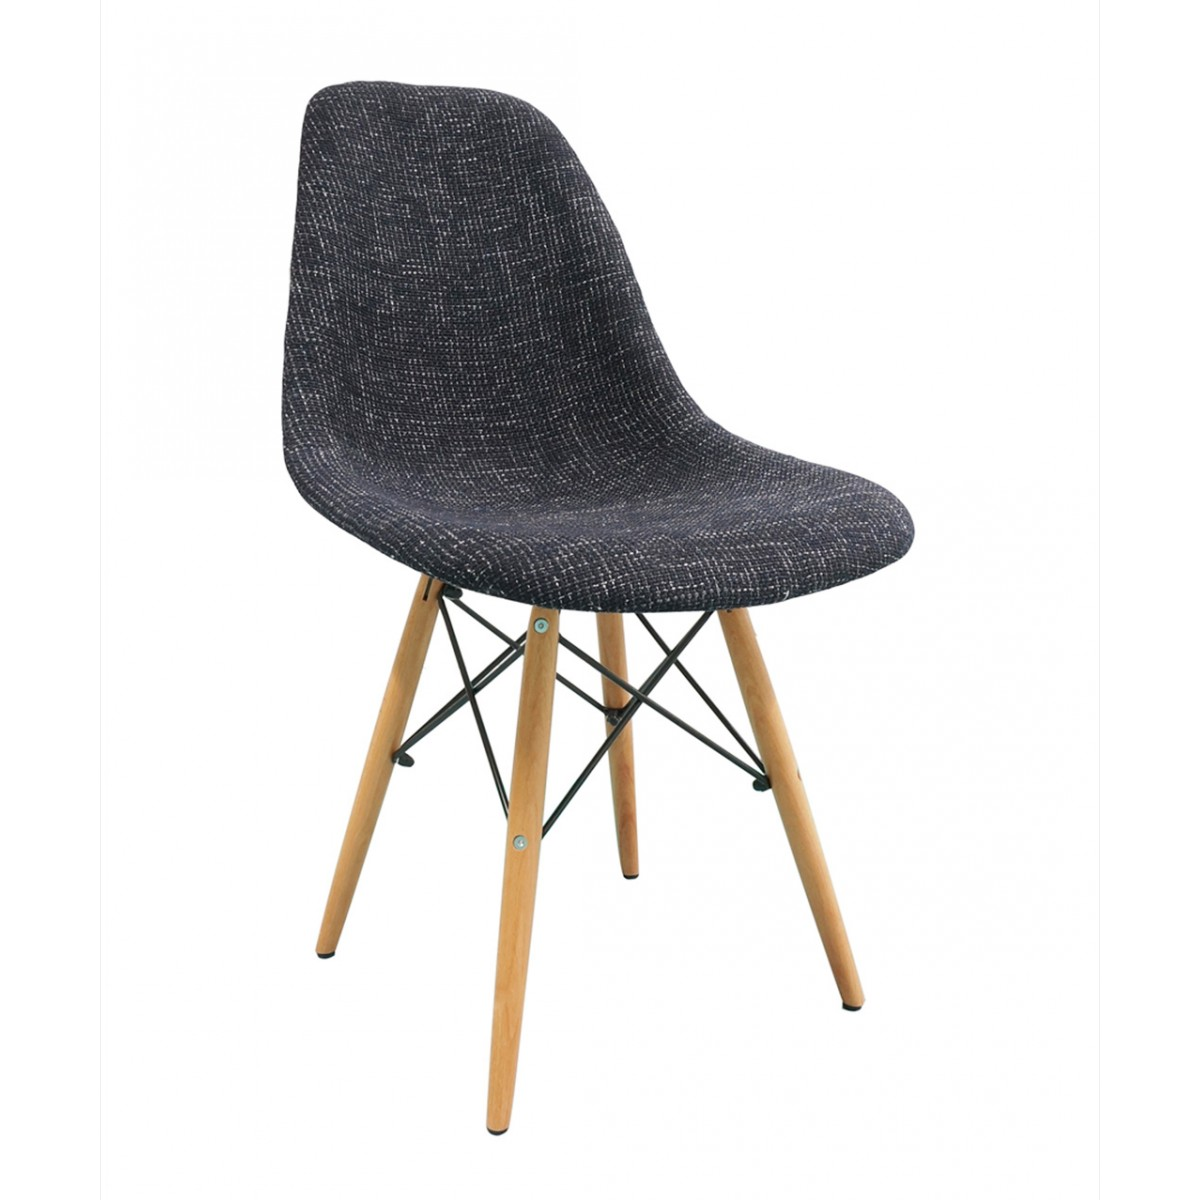 Black fabric upholstered eames style dsw shell chair with for Upholstered dining chairs with black legs